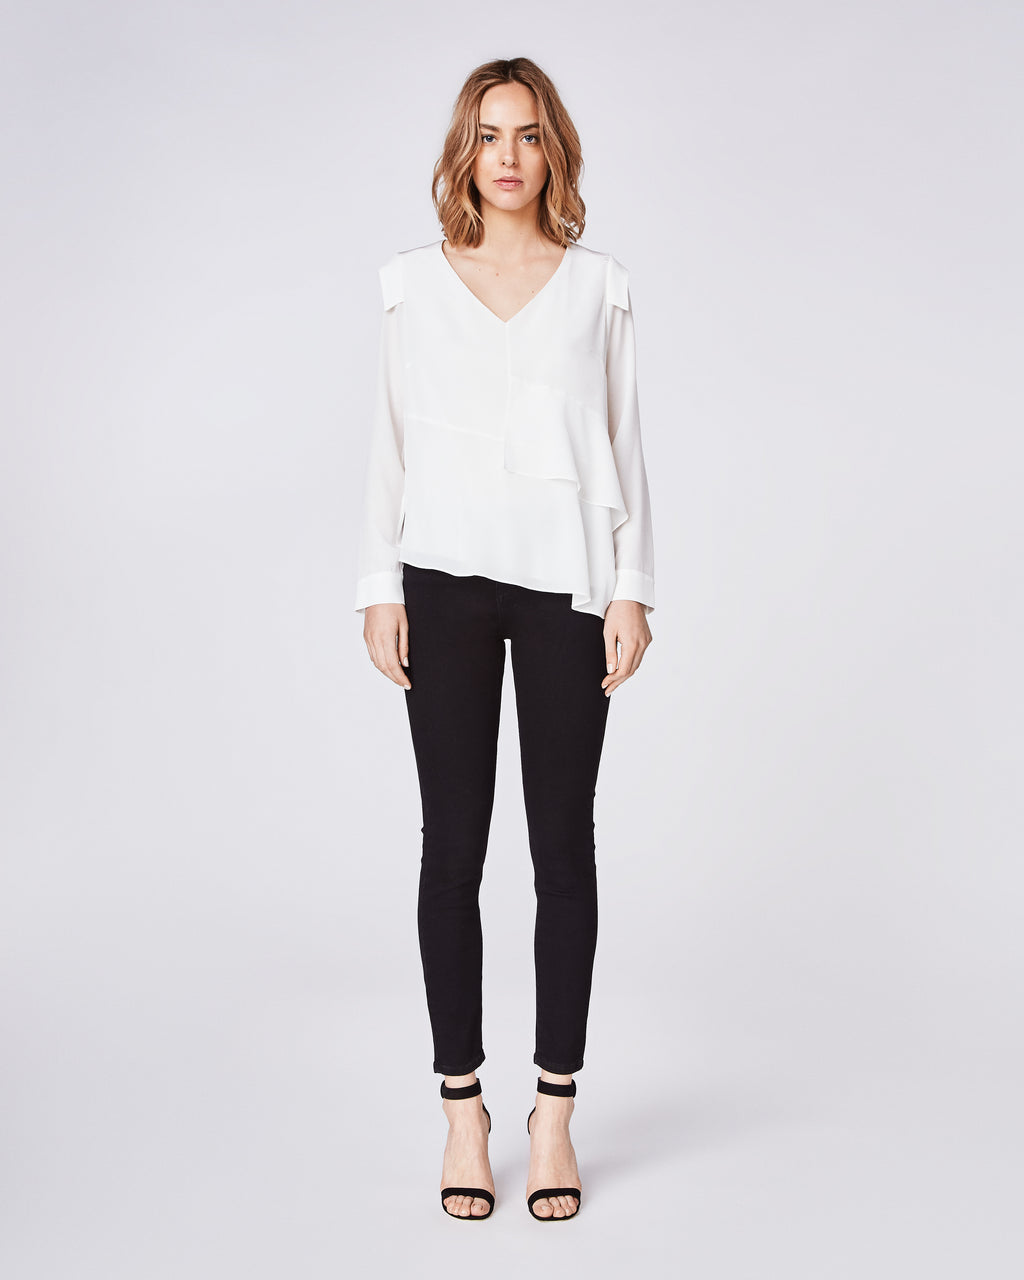 BG10307 - SILK ASYMMETRICAL TOP - tops - blouses - Wheather your dressing for work or for the weekend, style this asymmetrical, silk top with denim and a stacked heel or sneaker. Front lined only.